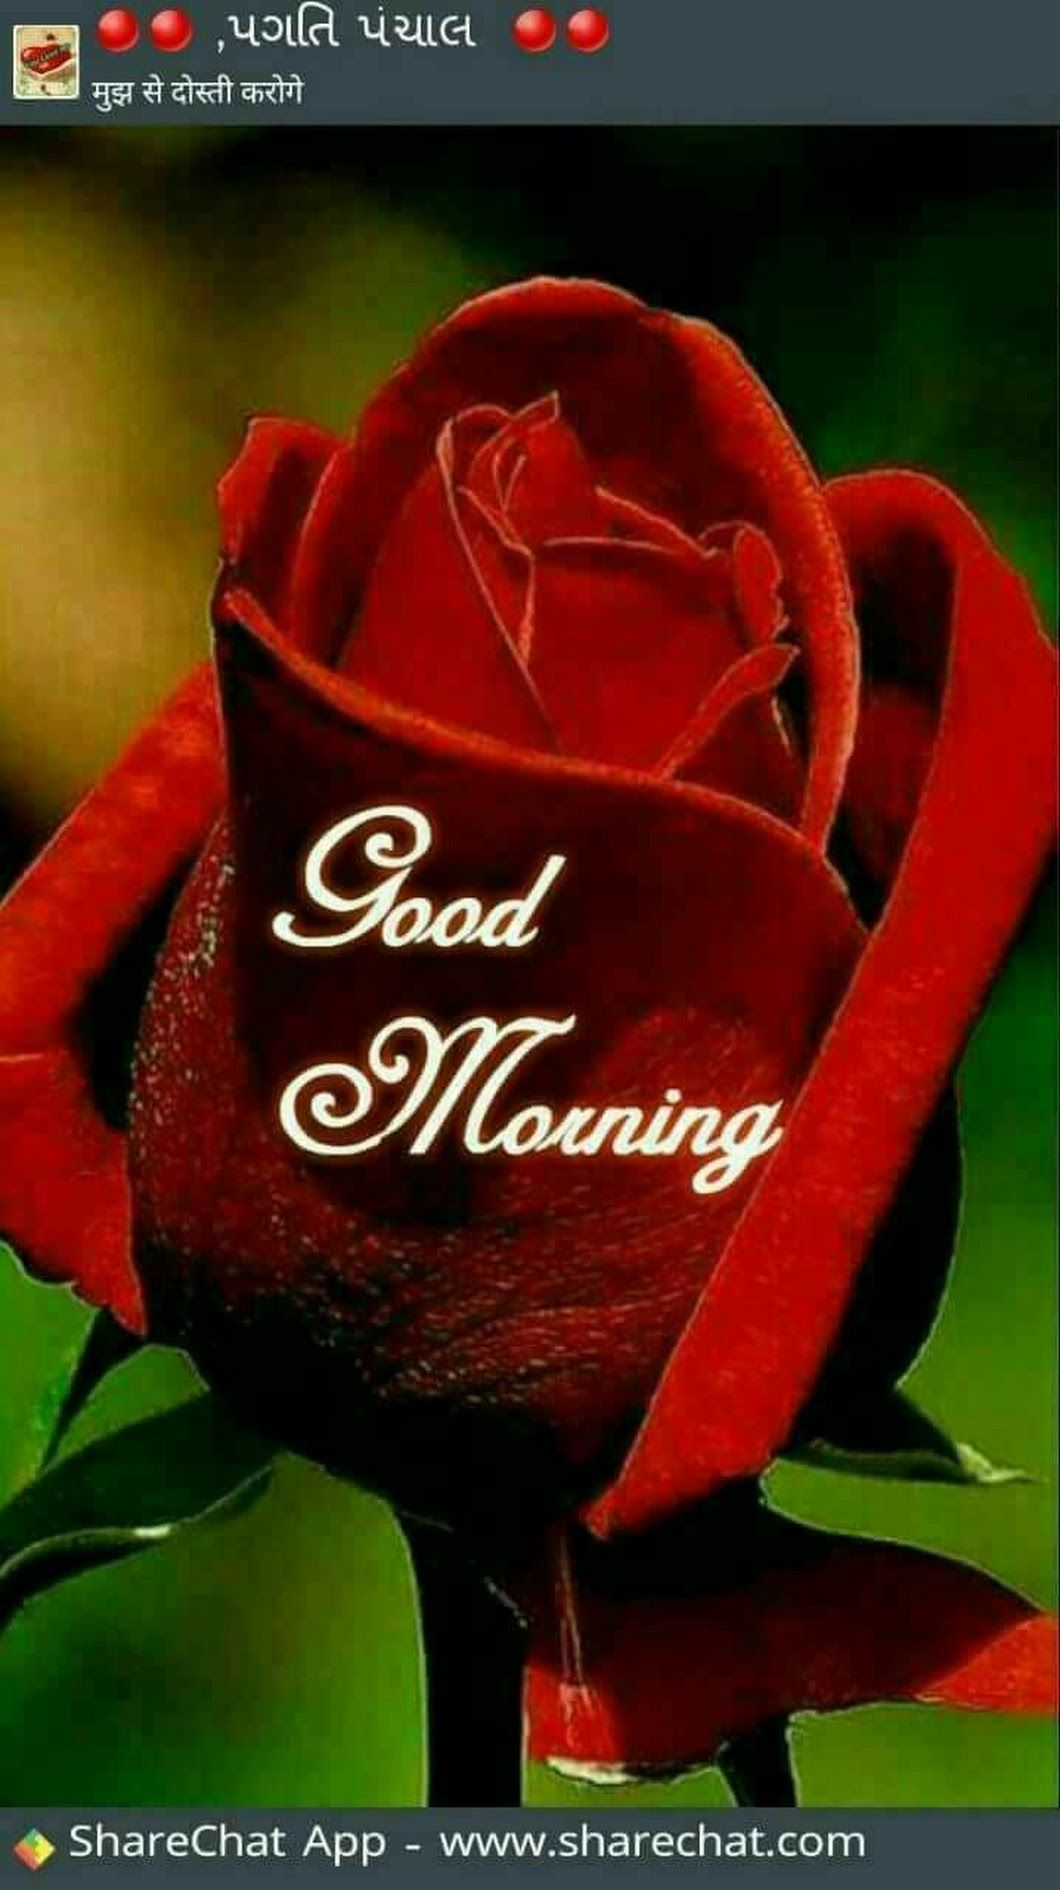 Raju Poojary Good Morning Roses Morning Pictures Good Morning